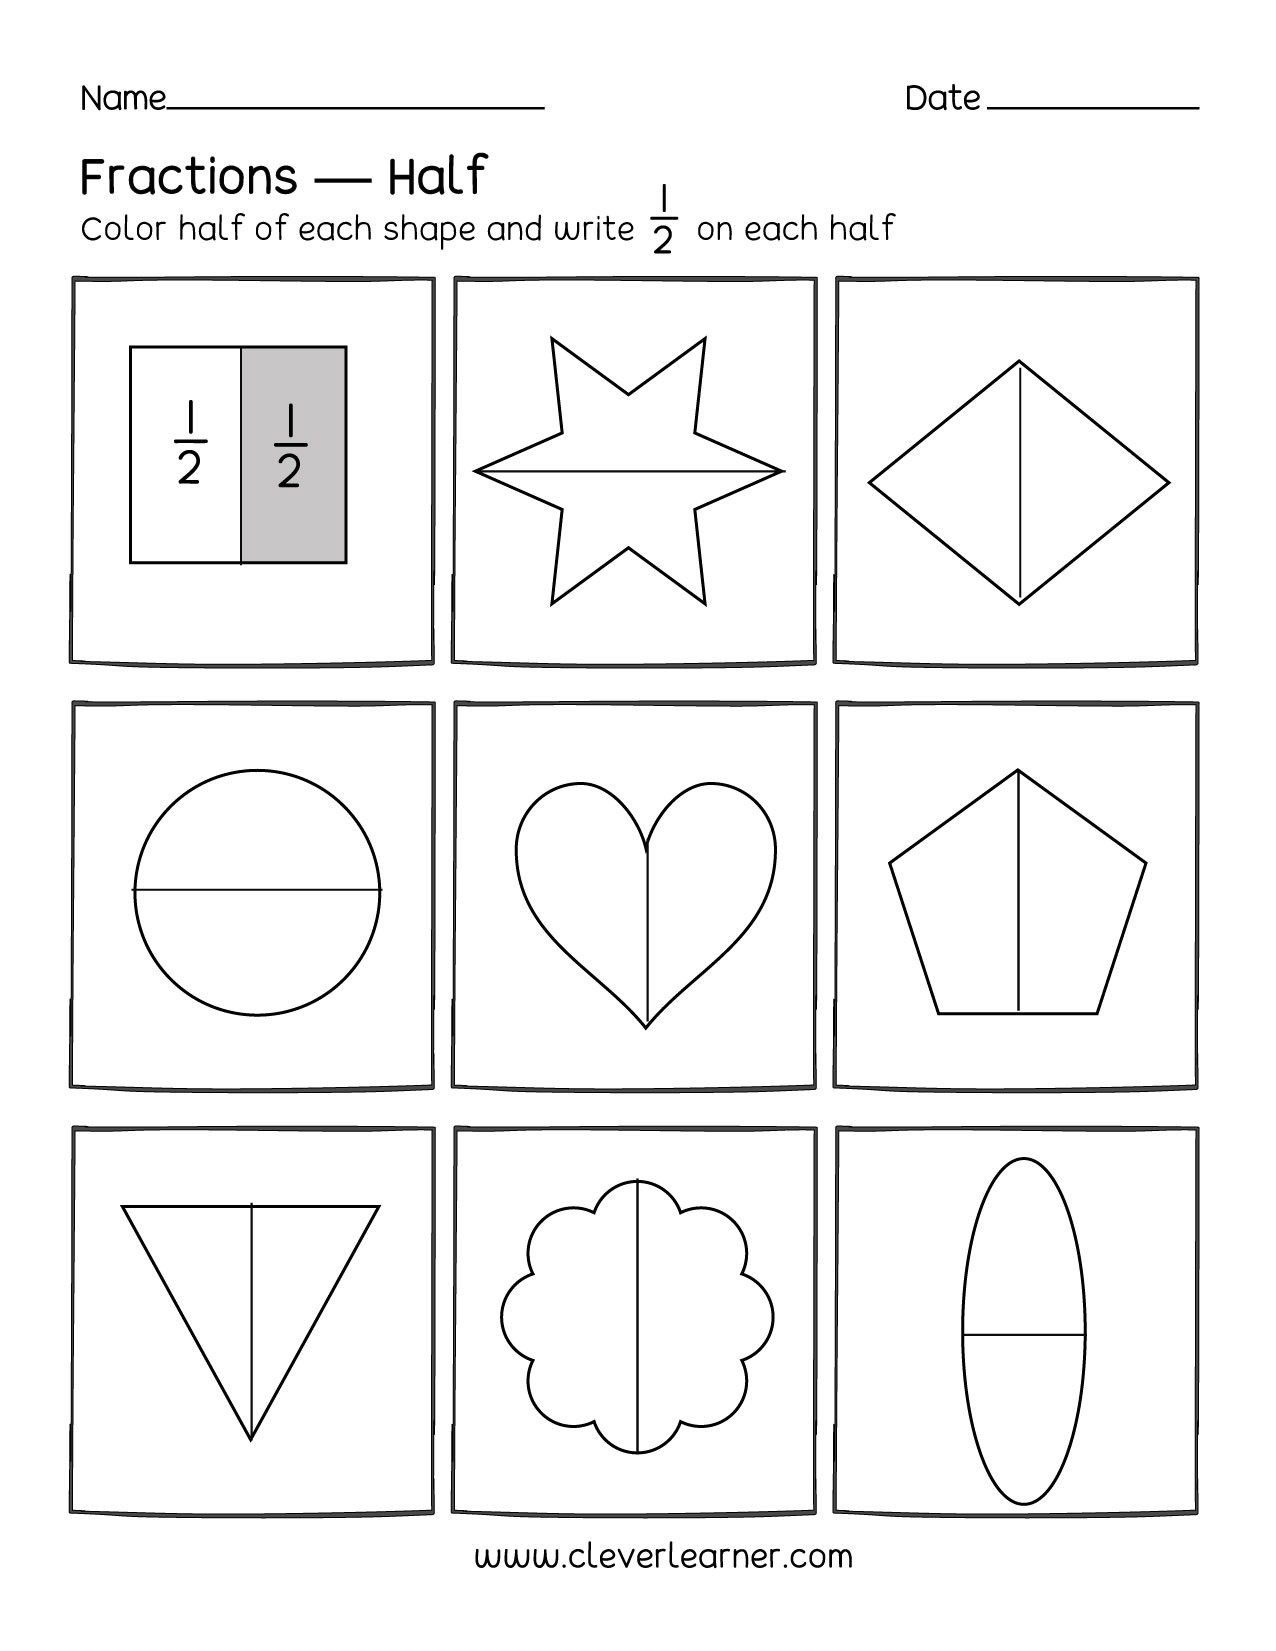 30 Fractions Greater Than 1 Worksheet